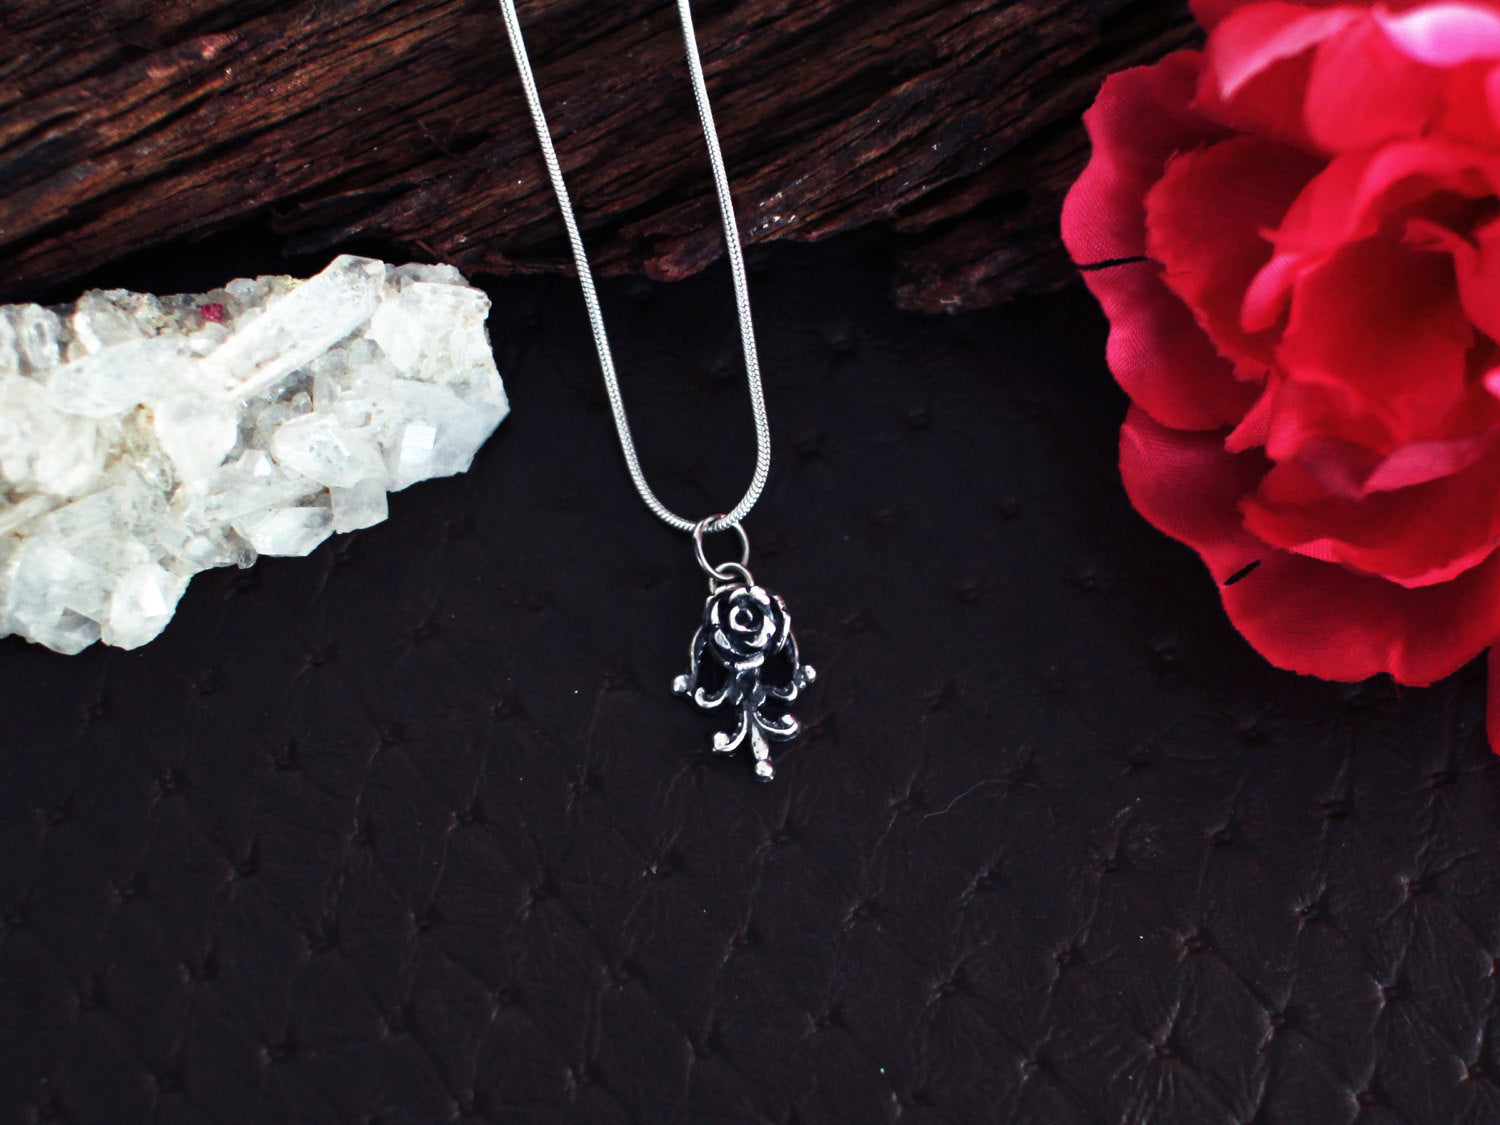 Tiny Silver Rose Pendant - Inchoo Bijoux